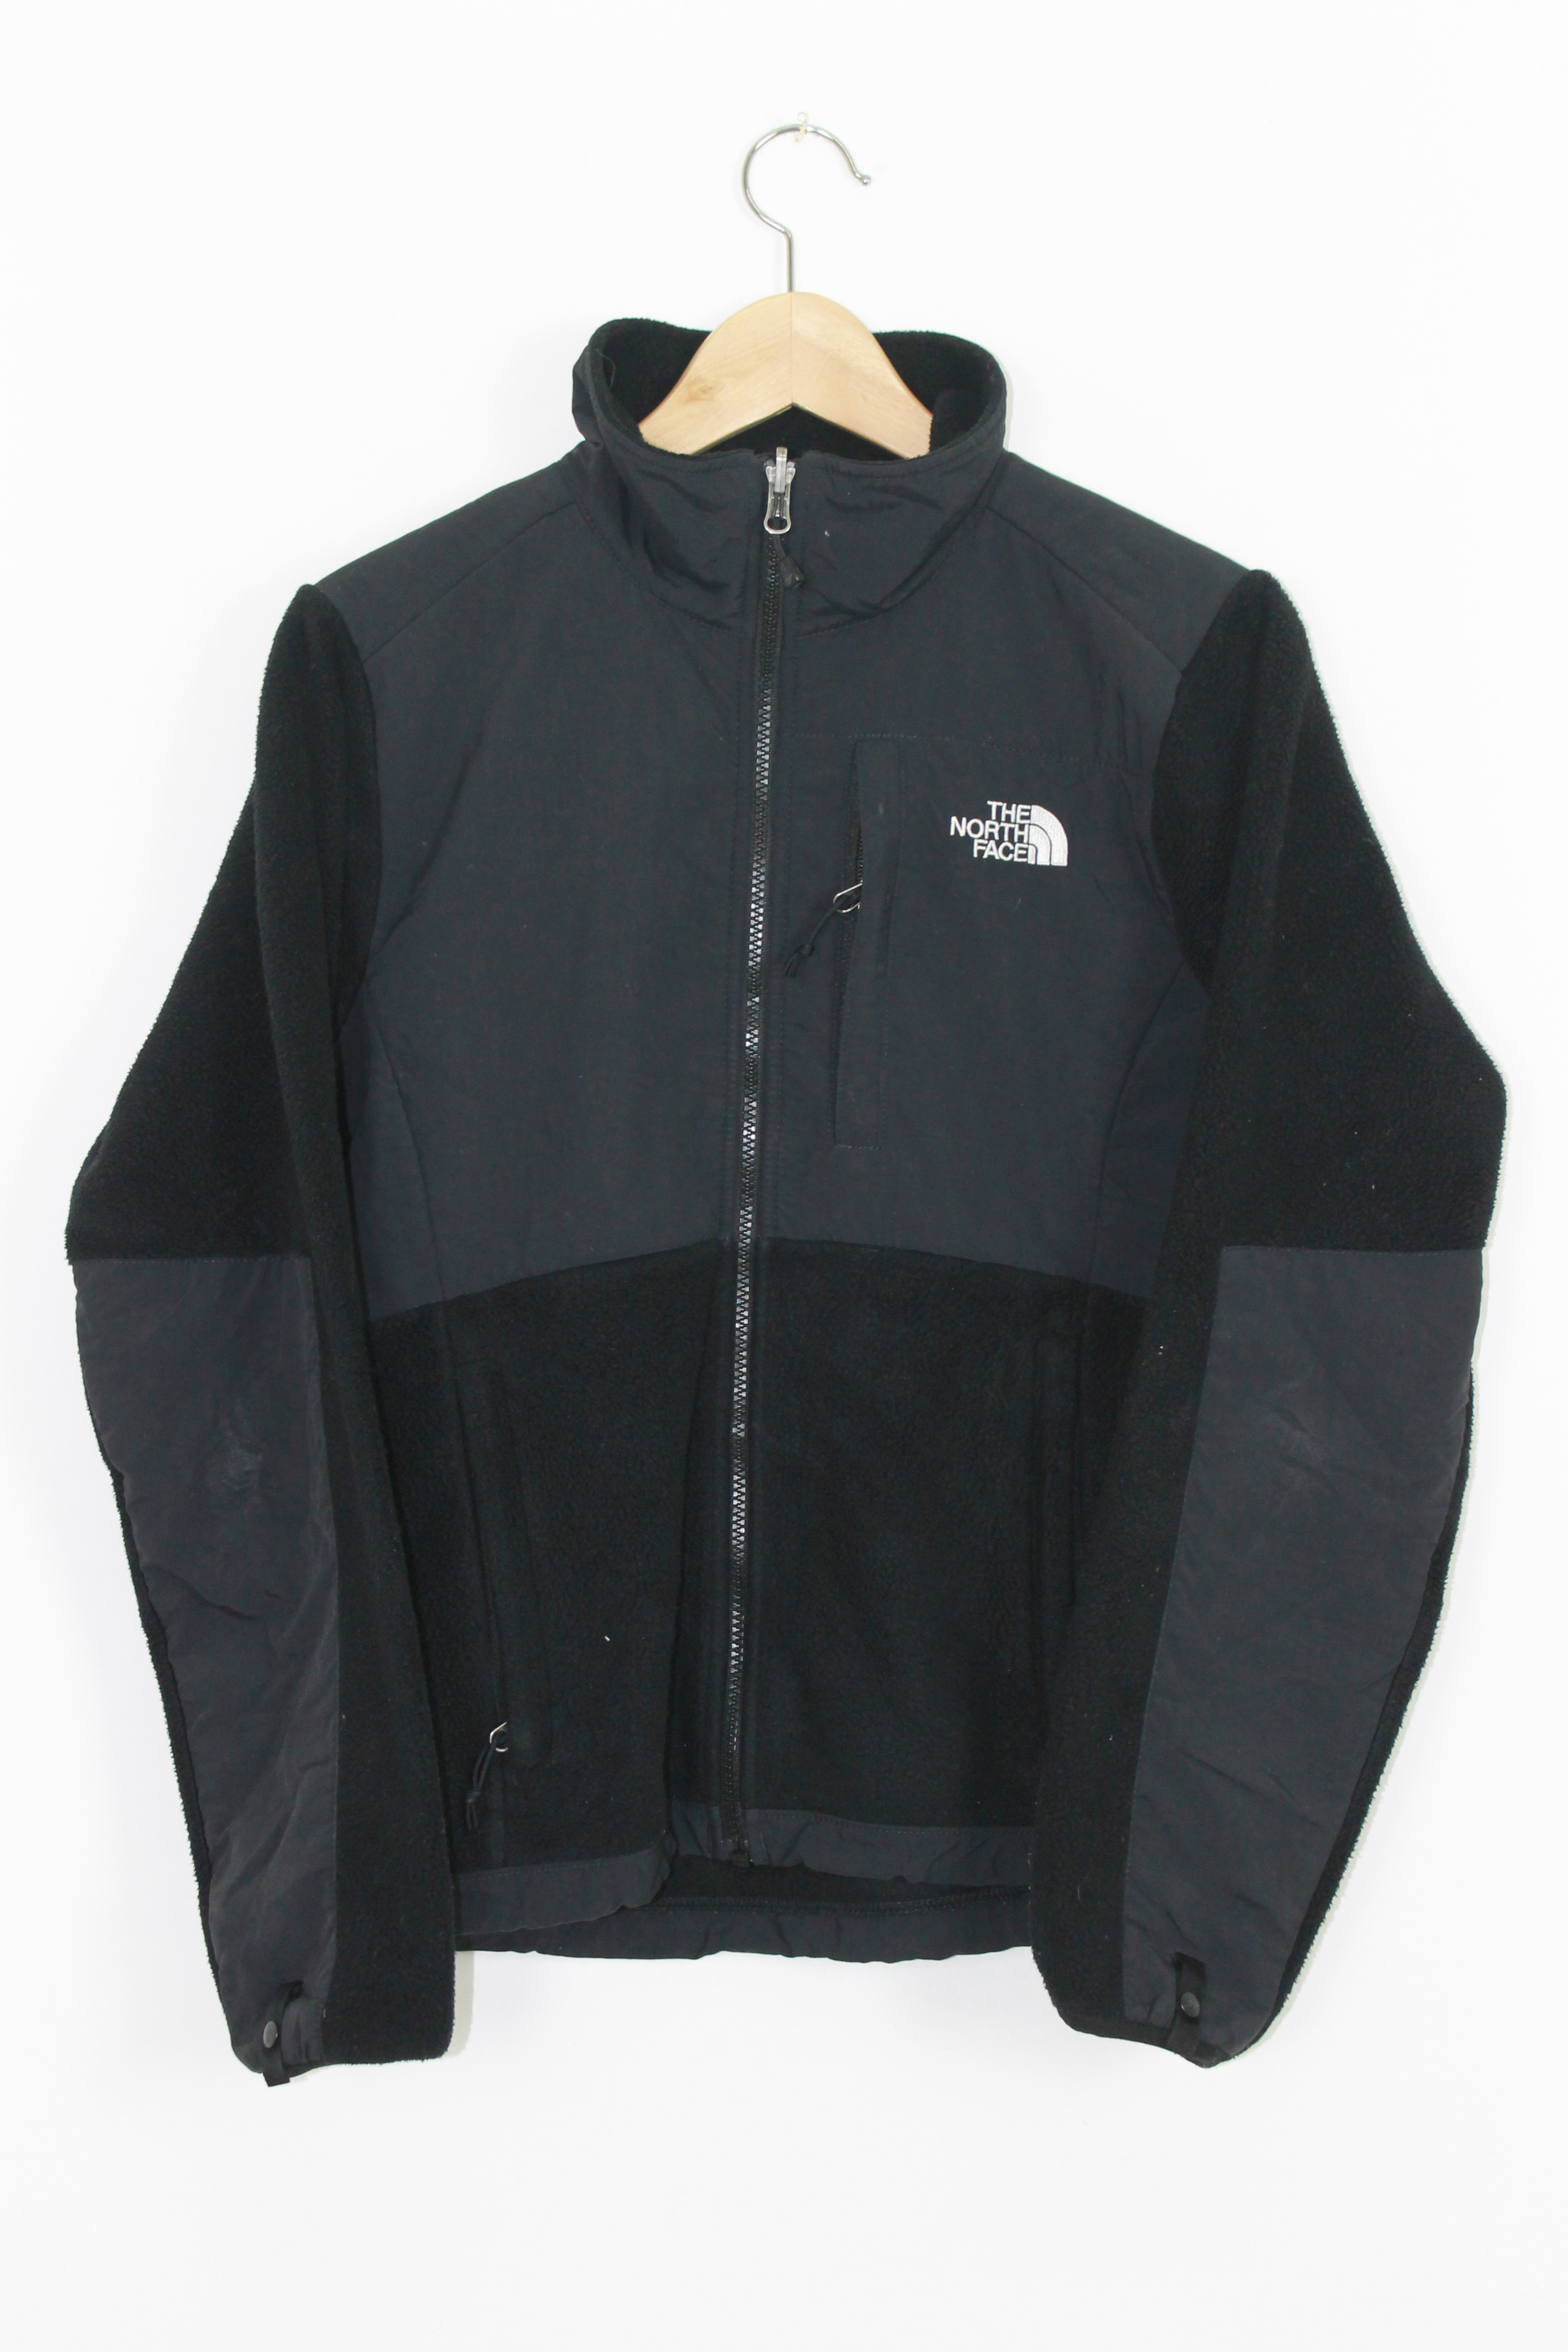 The North Face - Giacca pile